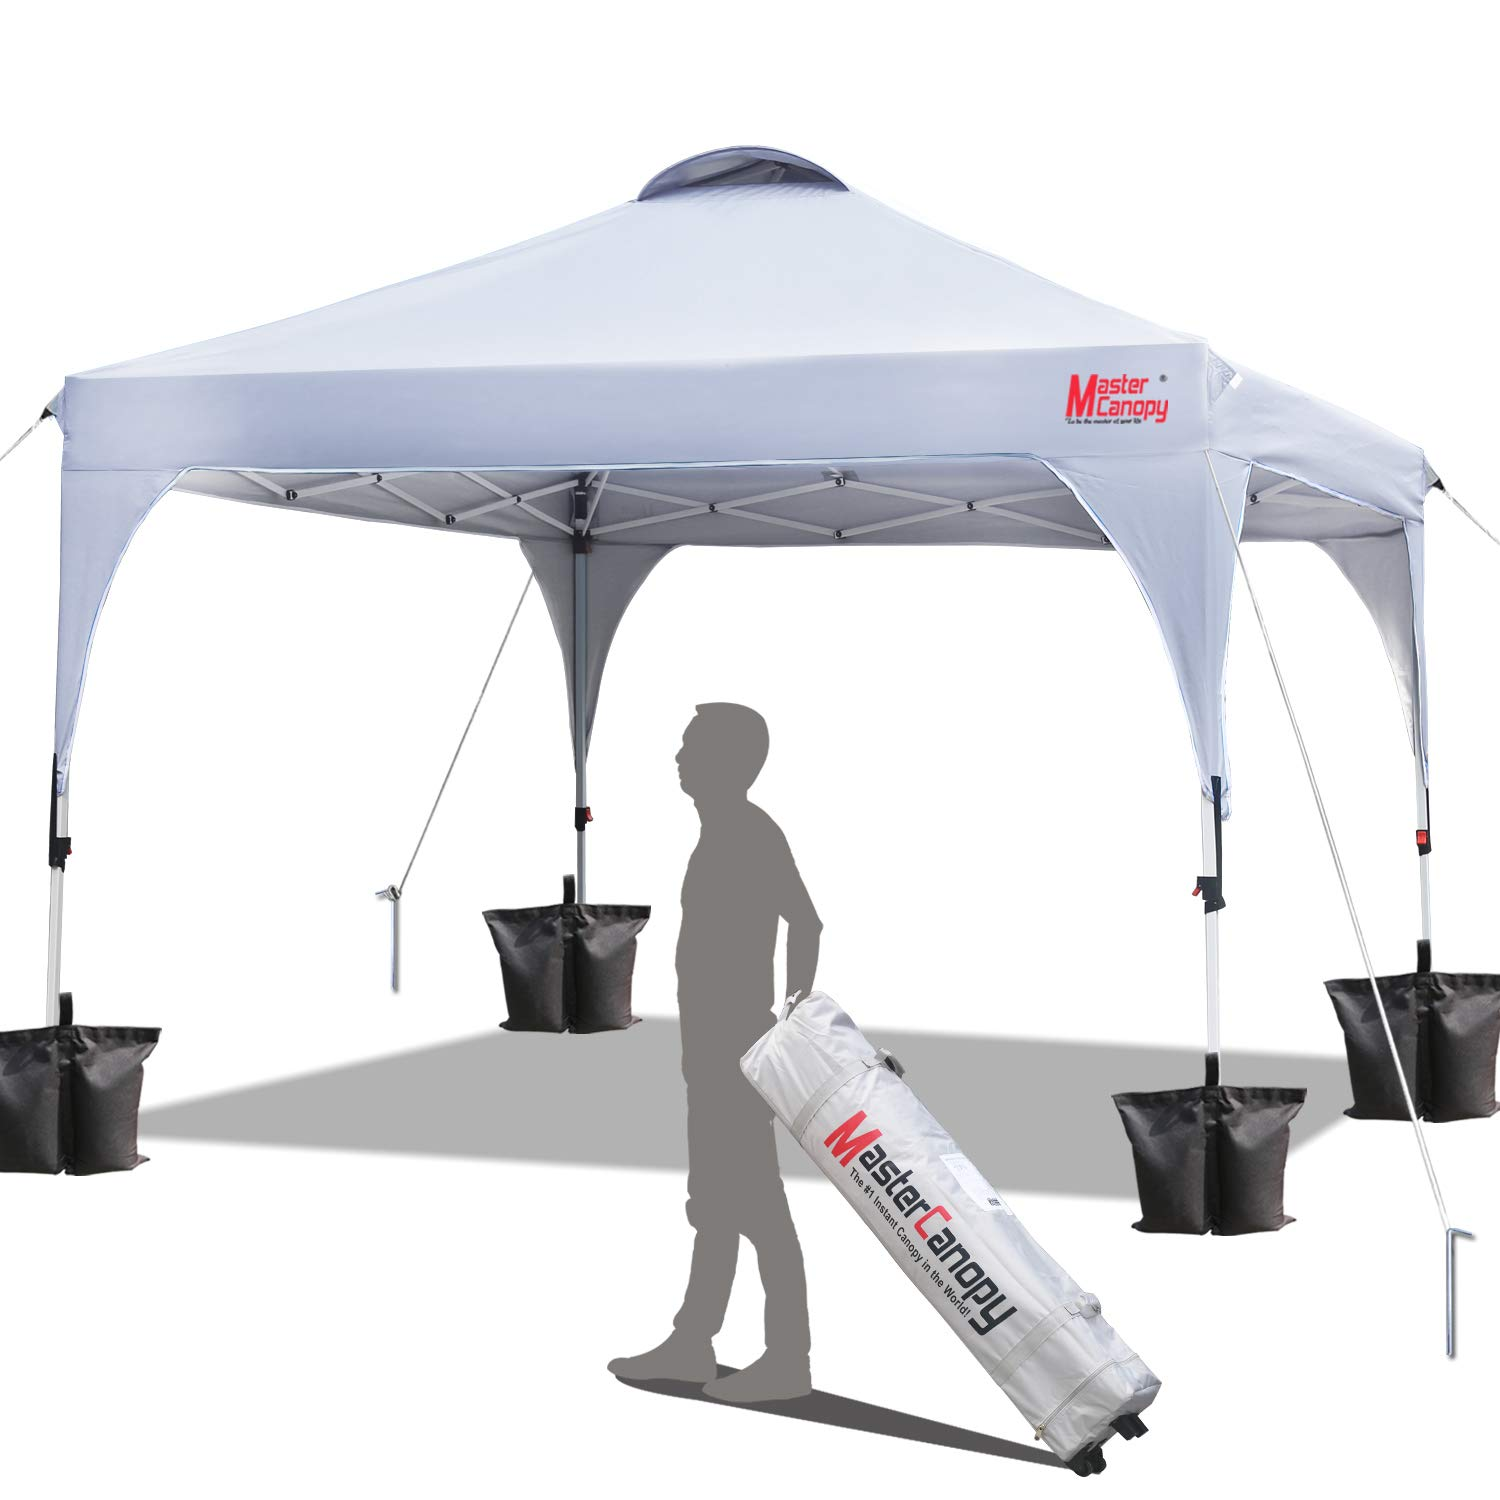 MasterCanopy Patio Pop Up Commercial Canopy 10×10 Beach Canopy Better Air Circulation Canopy with Wheeled Backpack Carry Bag White